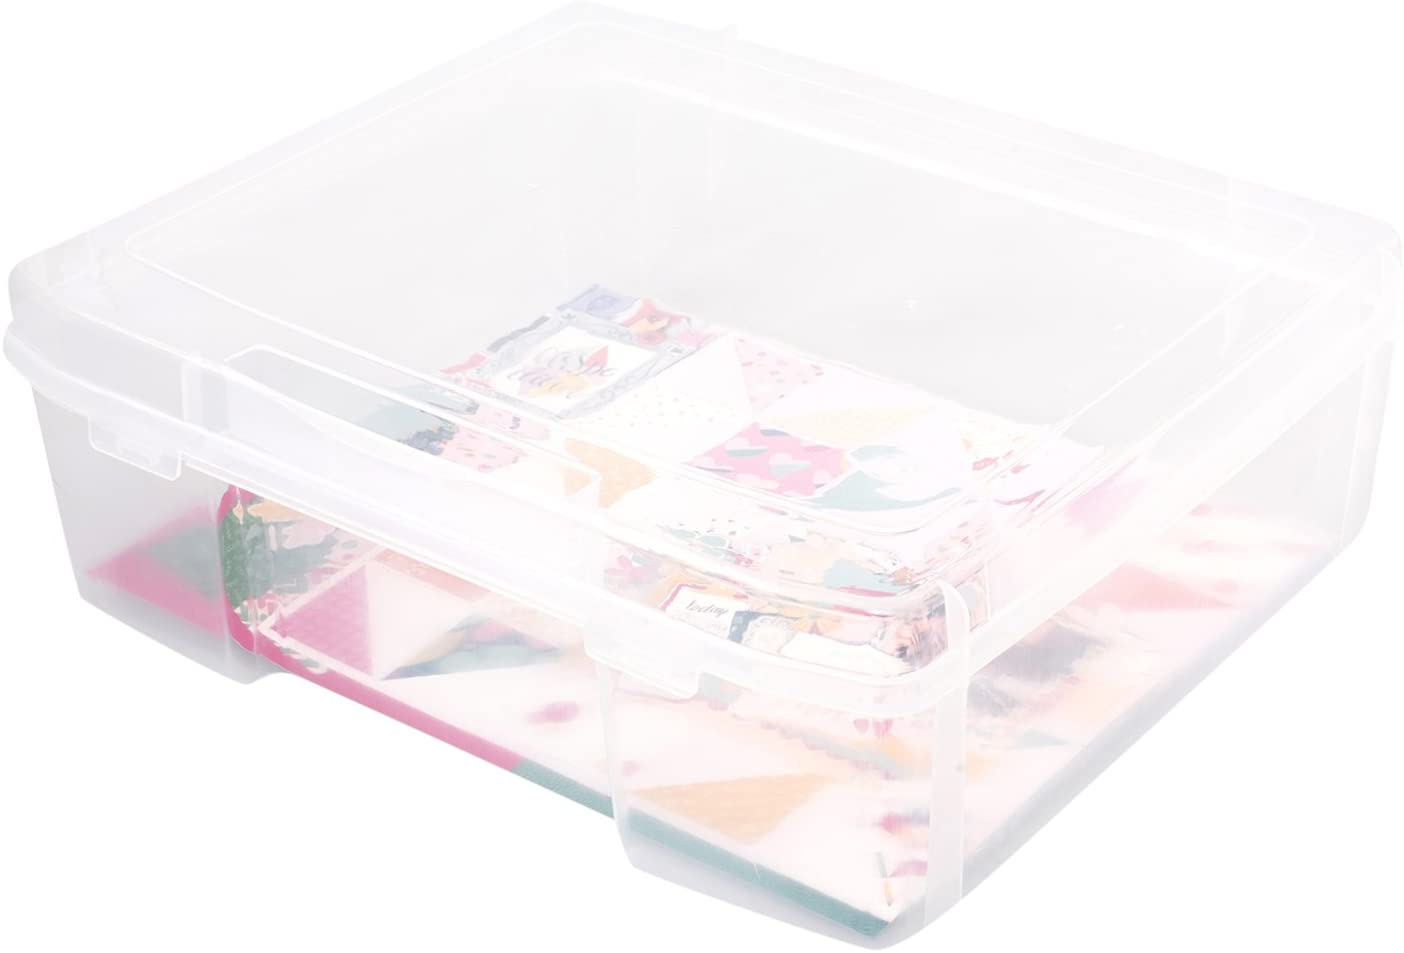 We R Memory Keepers 0633356602682 Storage Bins Storage & Decor-11 x 15-Large Craft and Photo Case